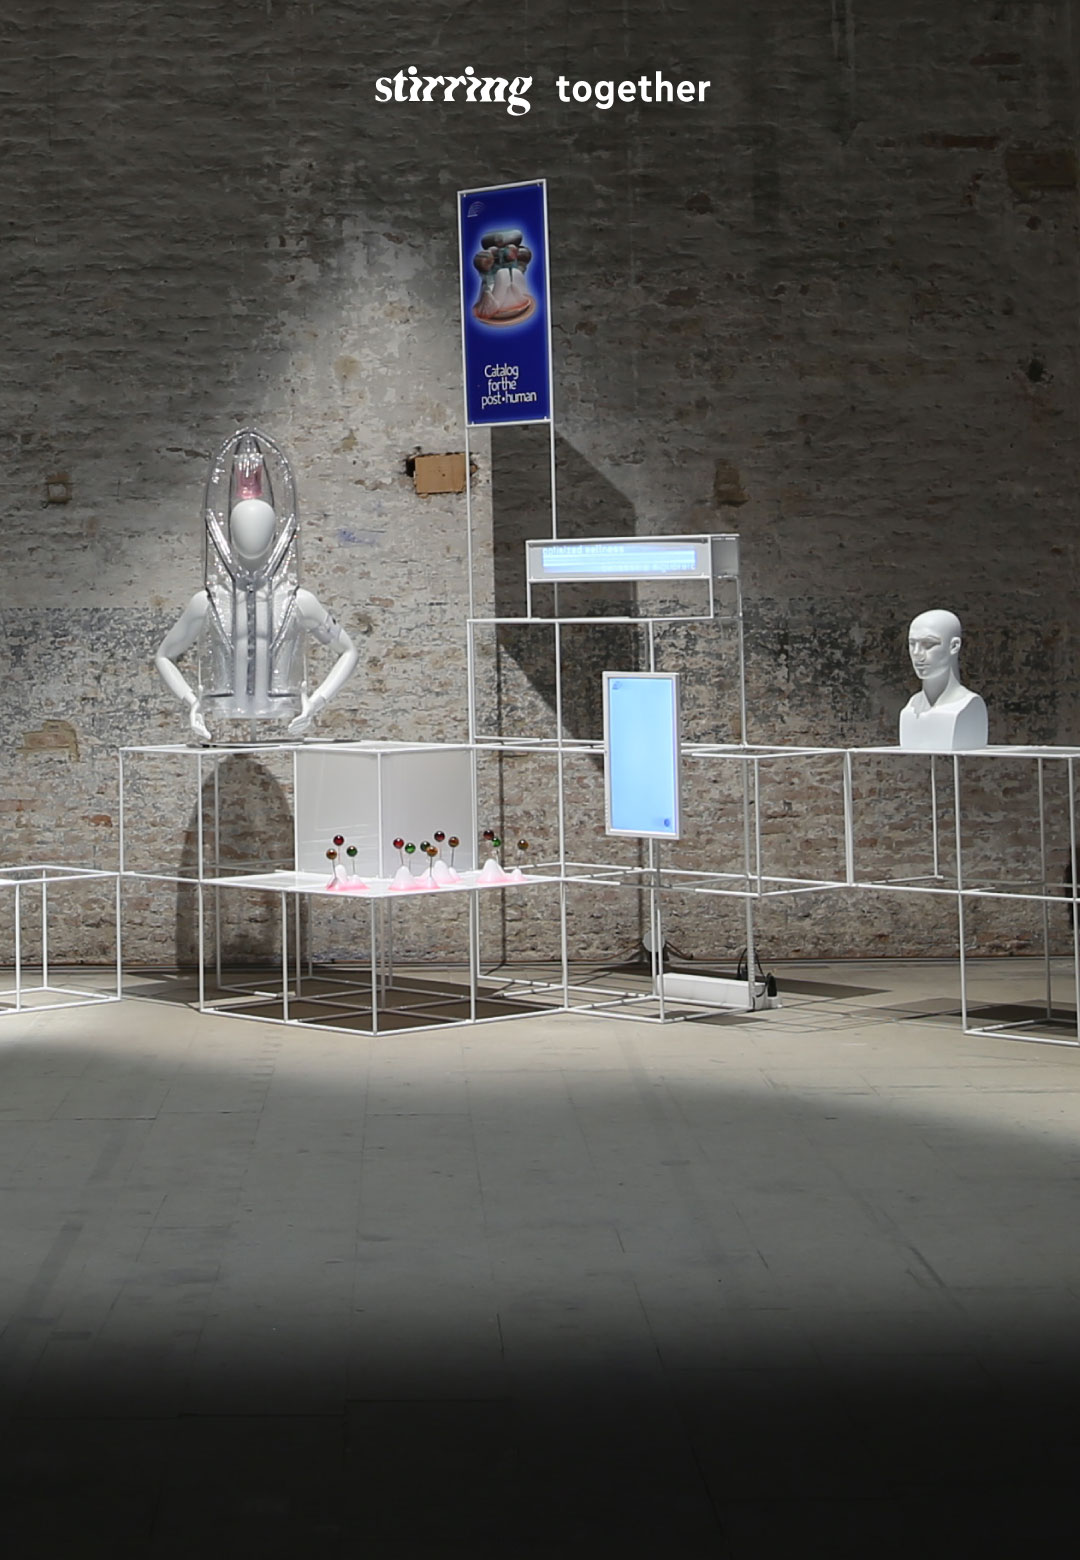 Catalog for the Post-Human by Tim Parsons and Jessica Charlesworth is a satirical installation that delves into the future of work and human enhancement | Catalog for the Post-Human | Parsons & Charlesworth | STIRworld